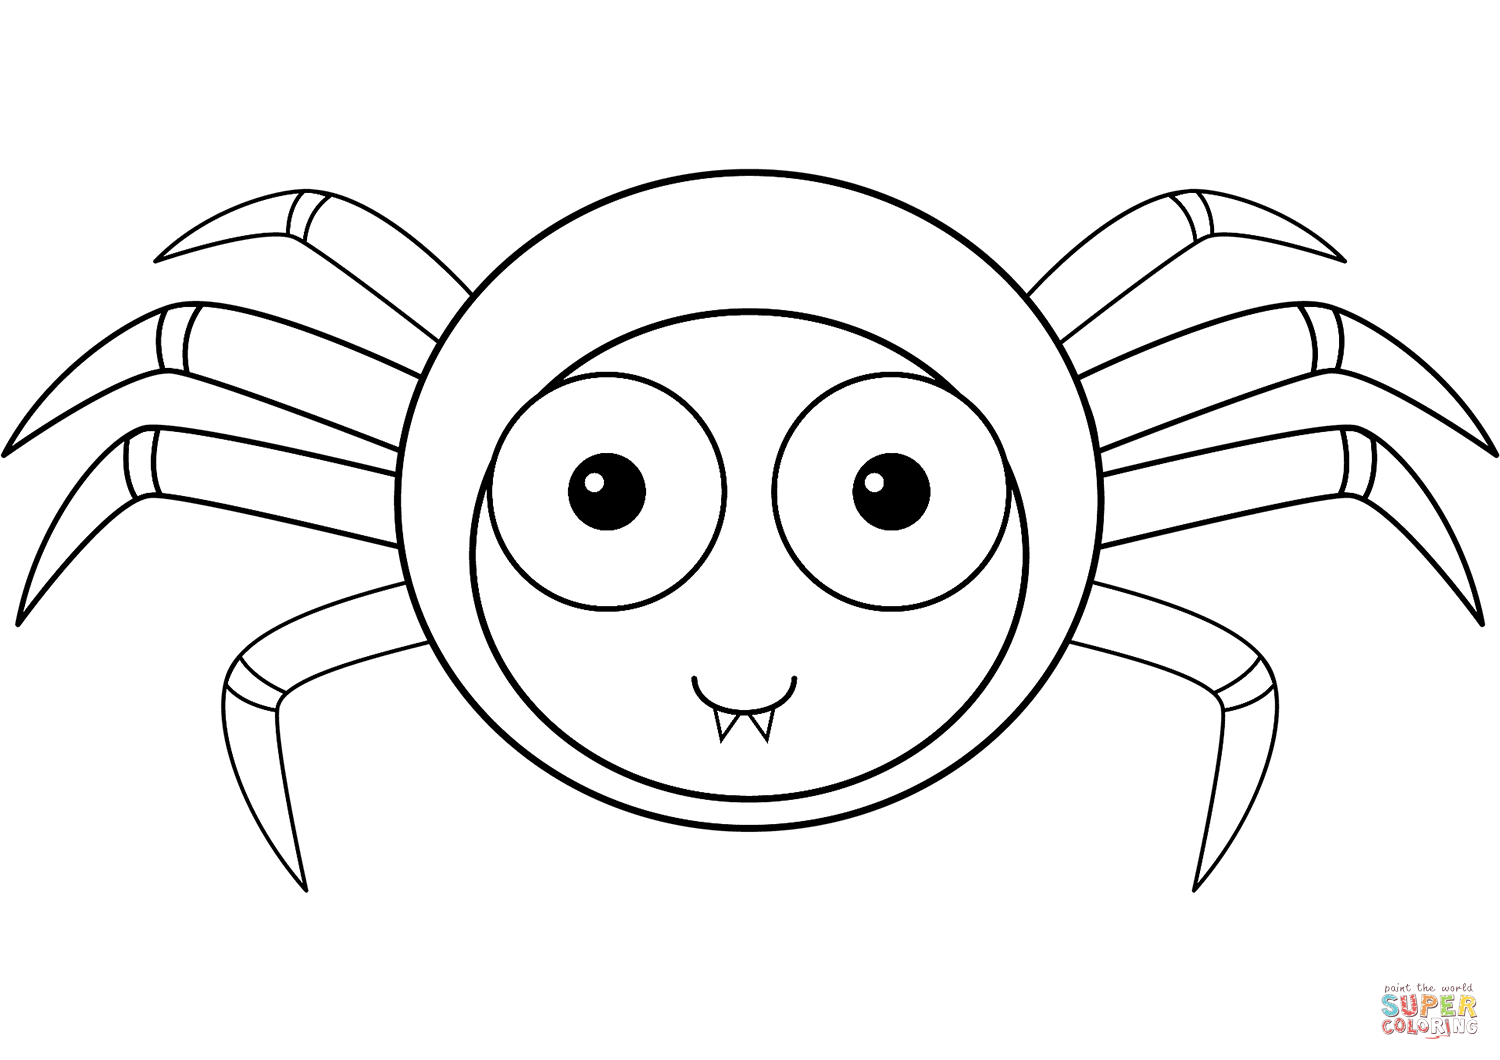 coloring printable spiders spider coloring pages to download and print for free spiders printable coloring